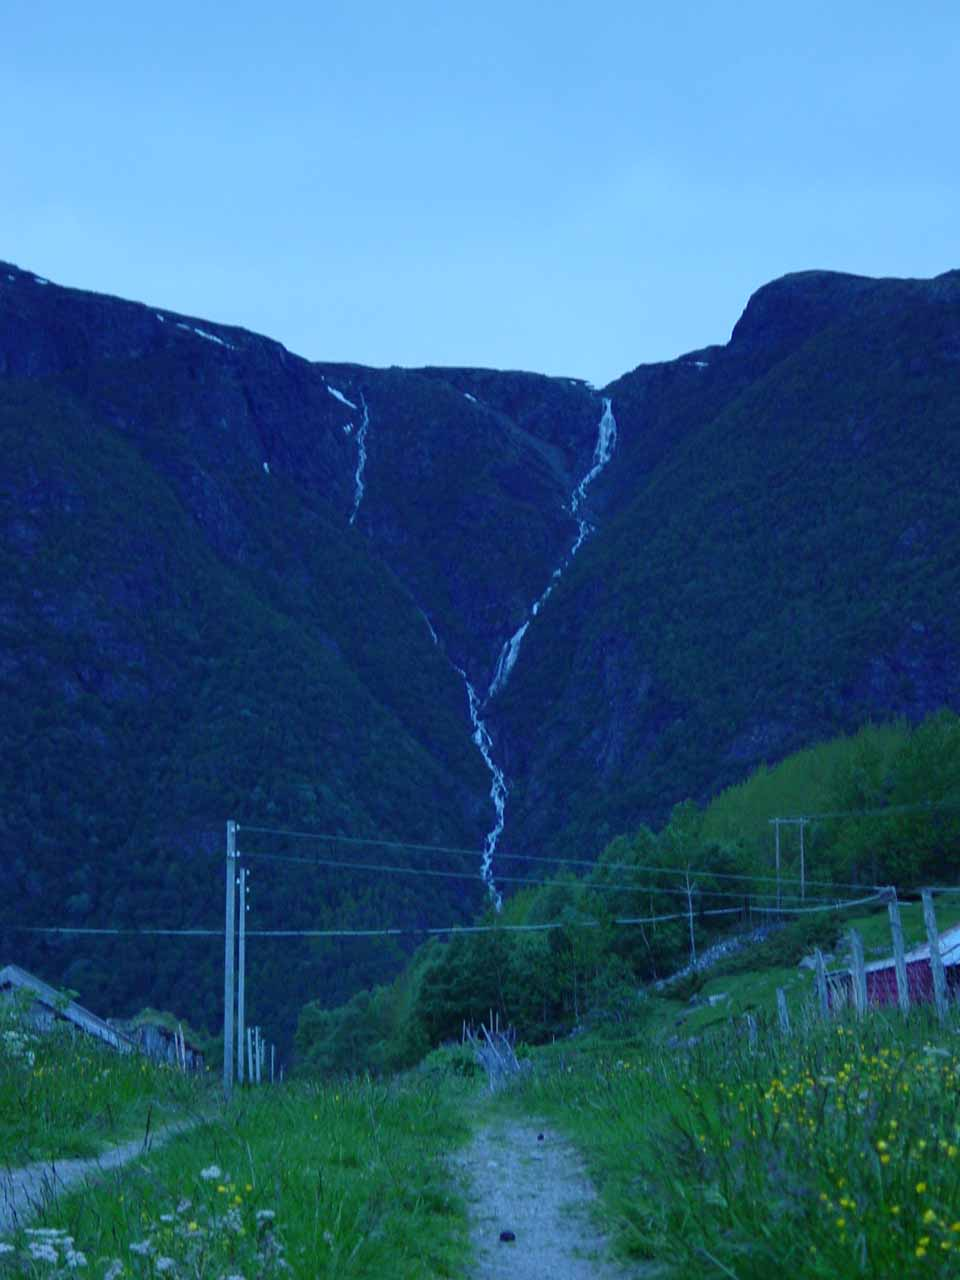 We noticed this giant falls during our late drive back to Lærdal from Hemsedal along the Rv52. We don't know its name but our GPS suggested it could be on Borlosgrovi, Geitåni, or Galdestølelvi